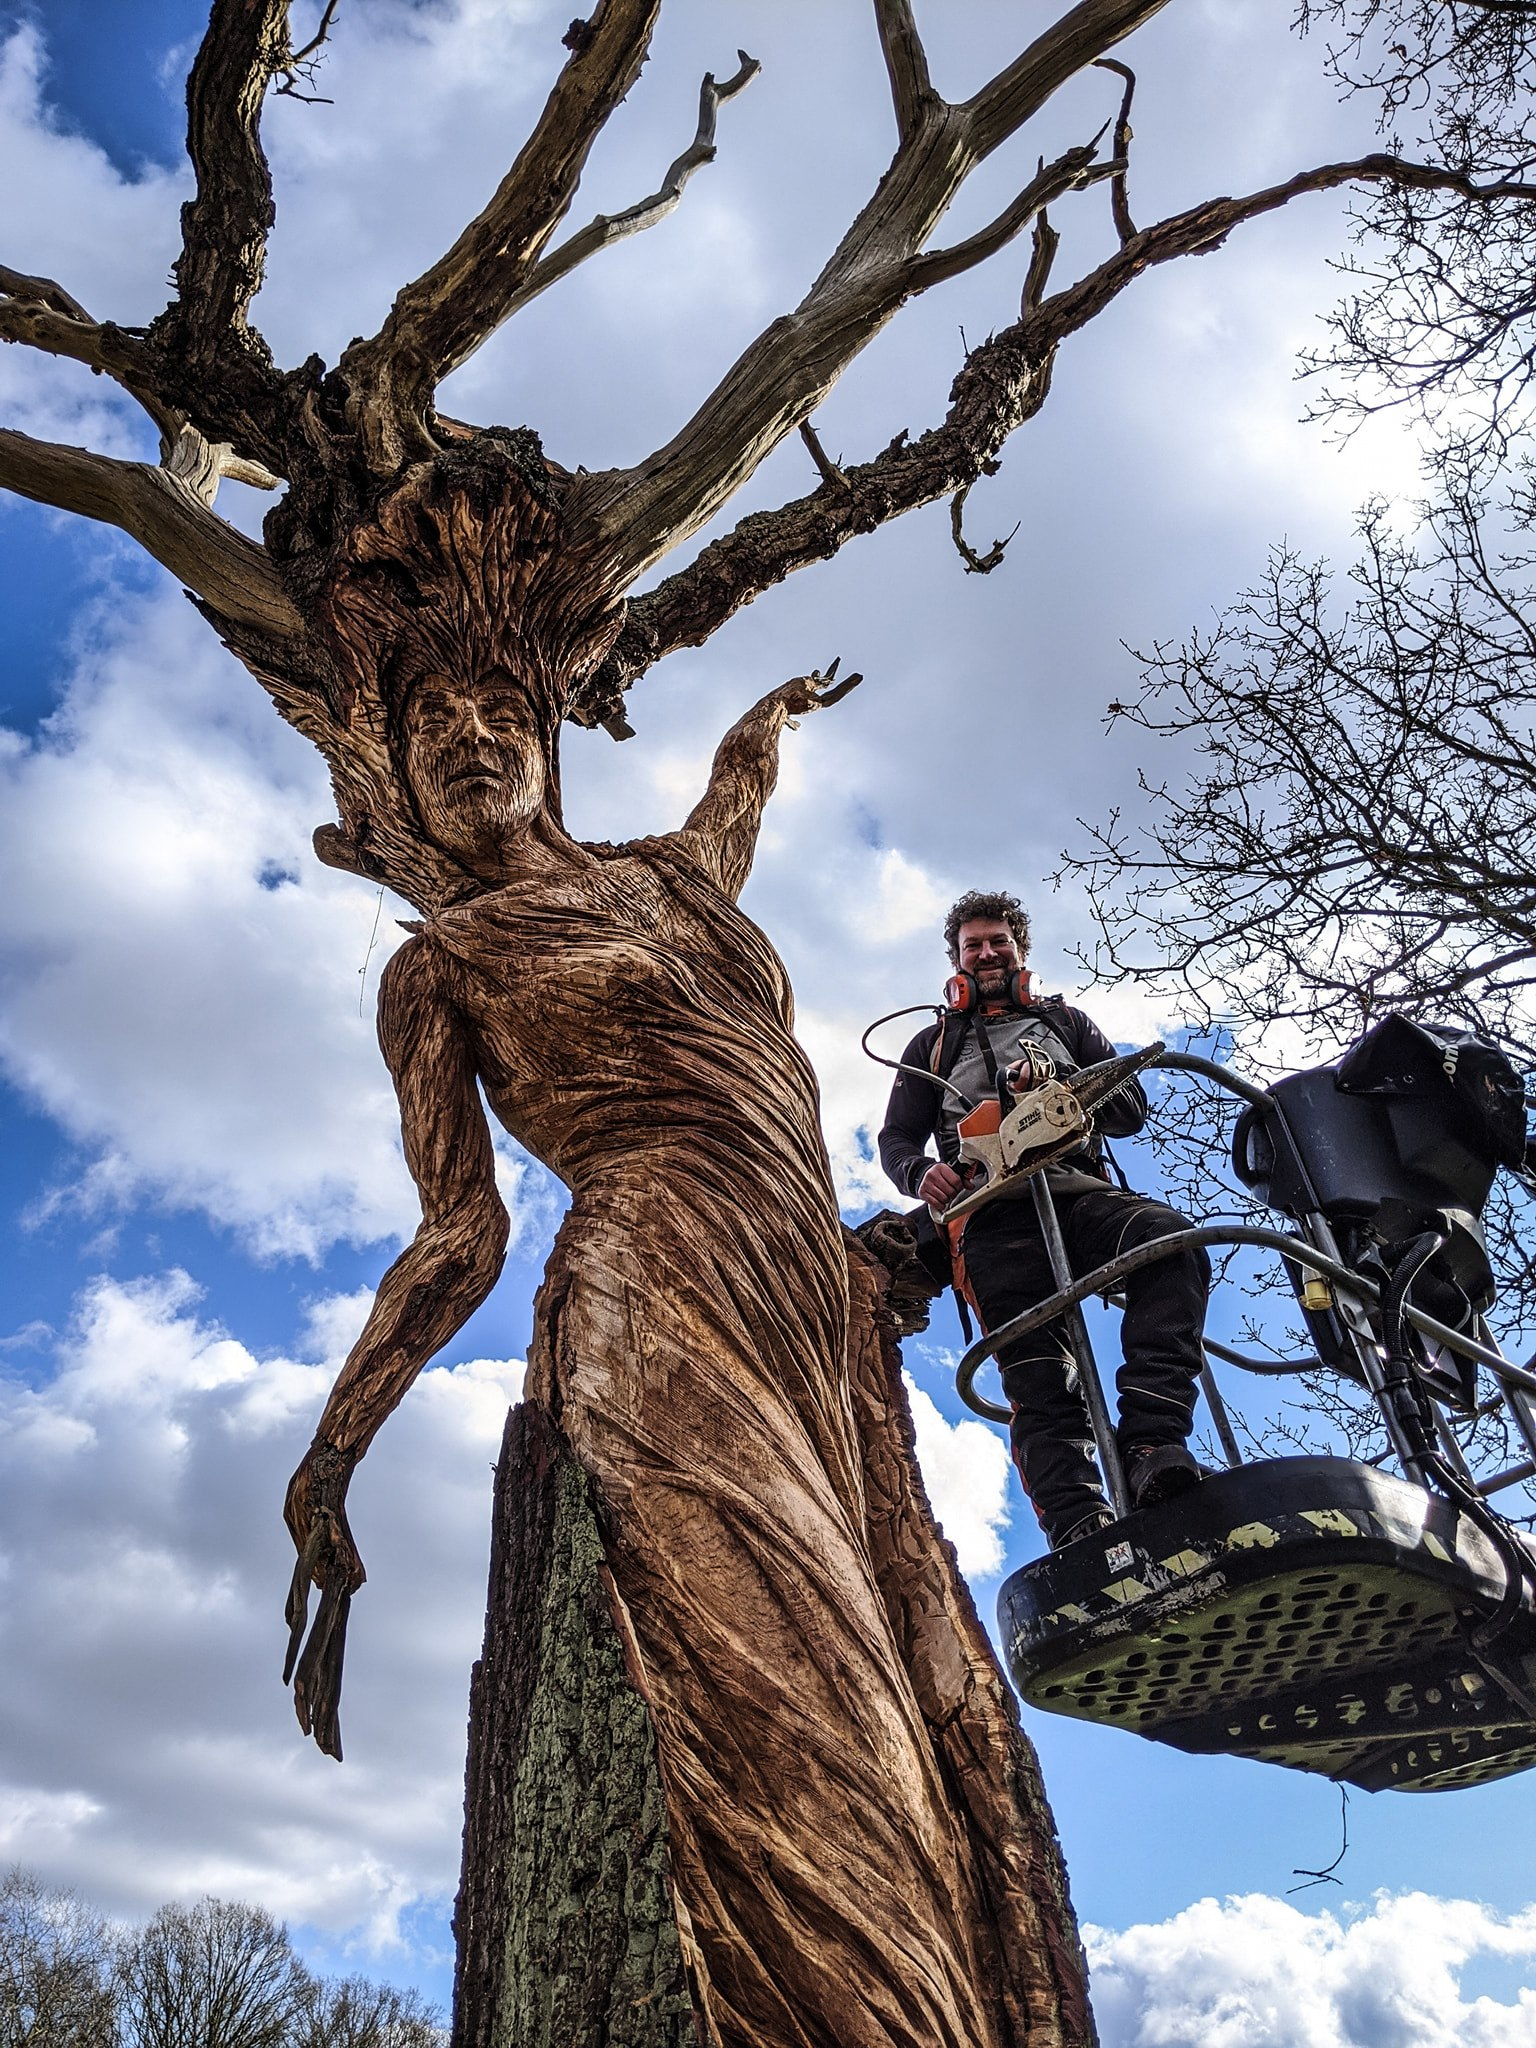 Why is art expensive? photo shows simon o'rourke with his oak maiden sculpture. It is around 3m tall, and he is standing in a cherry picker, one of the underlying costs behind his art